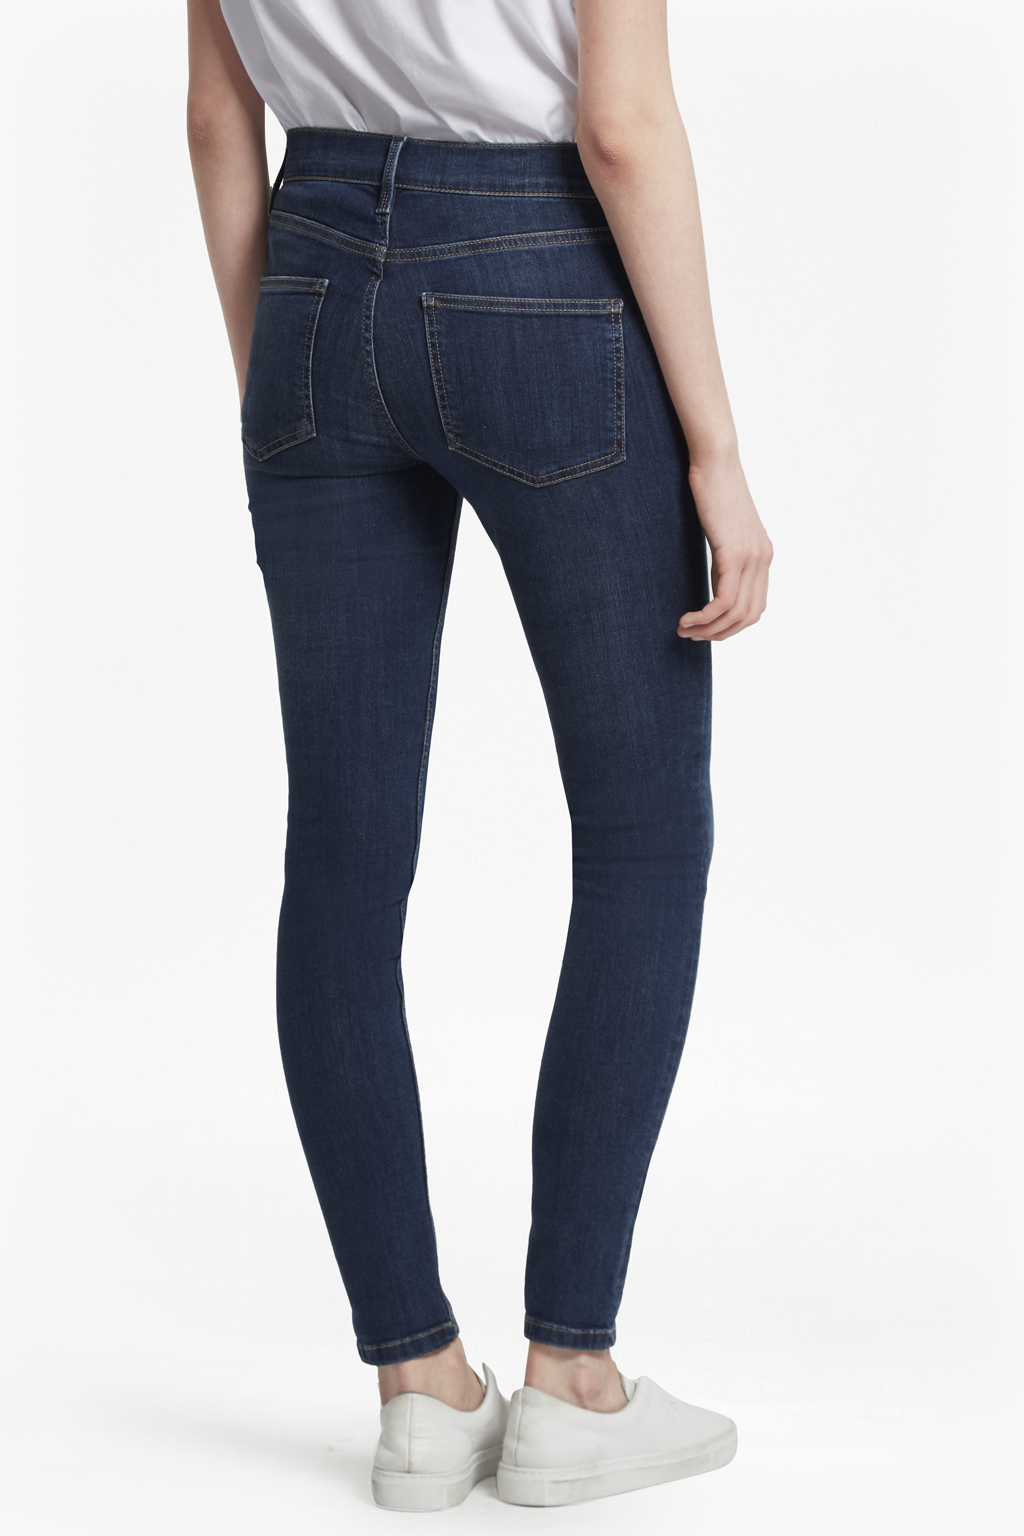 Fast Delivery Cheap Price Rebound Skinny Jeans - Pine blue French Connection Amazing Price Sale Online 5Gj8qU